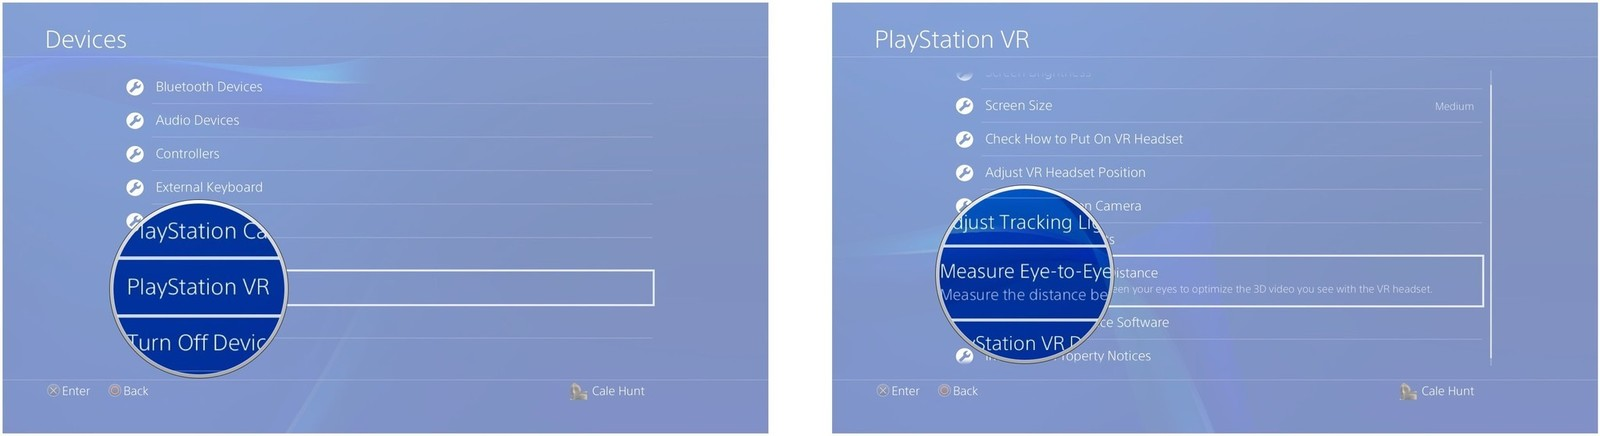 Select PlayStation VR. Select Measure Eye-to-Eye Distance.